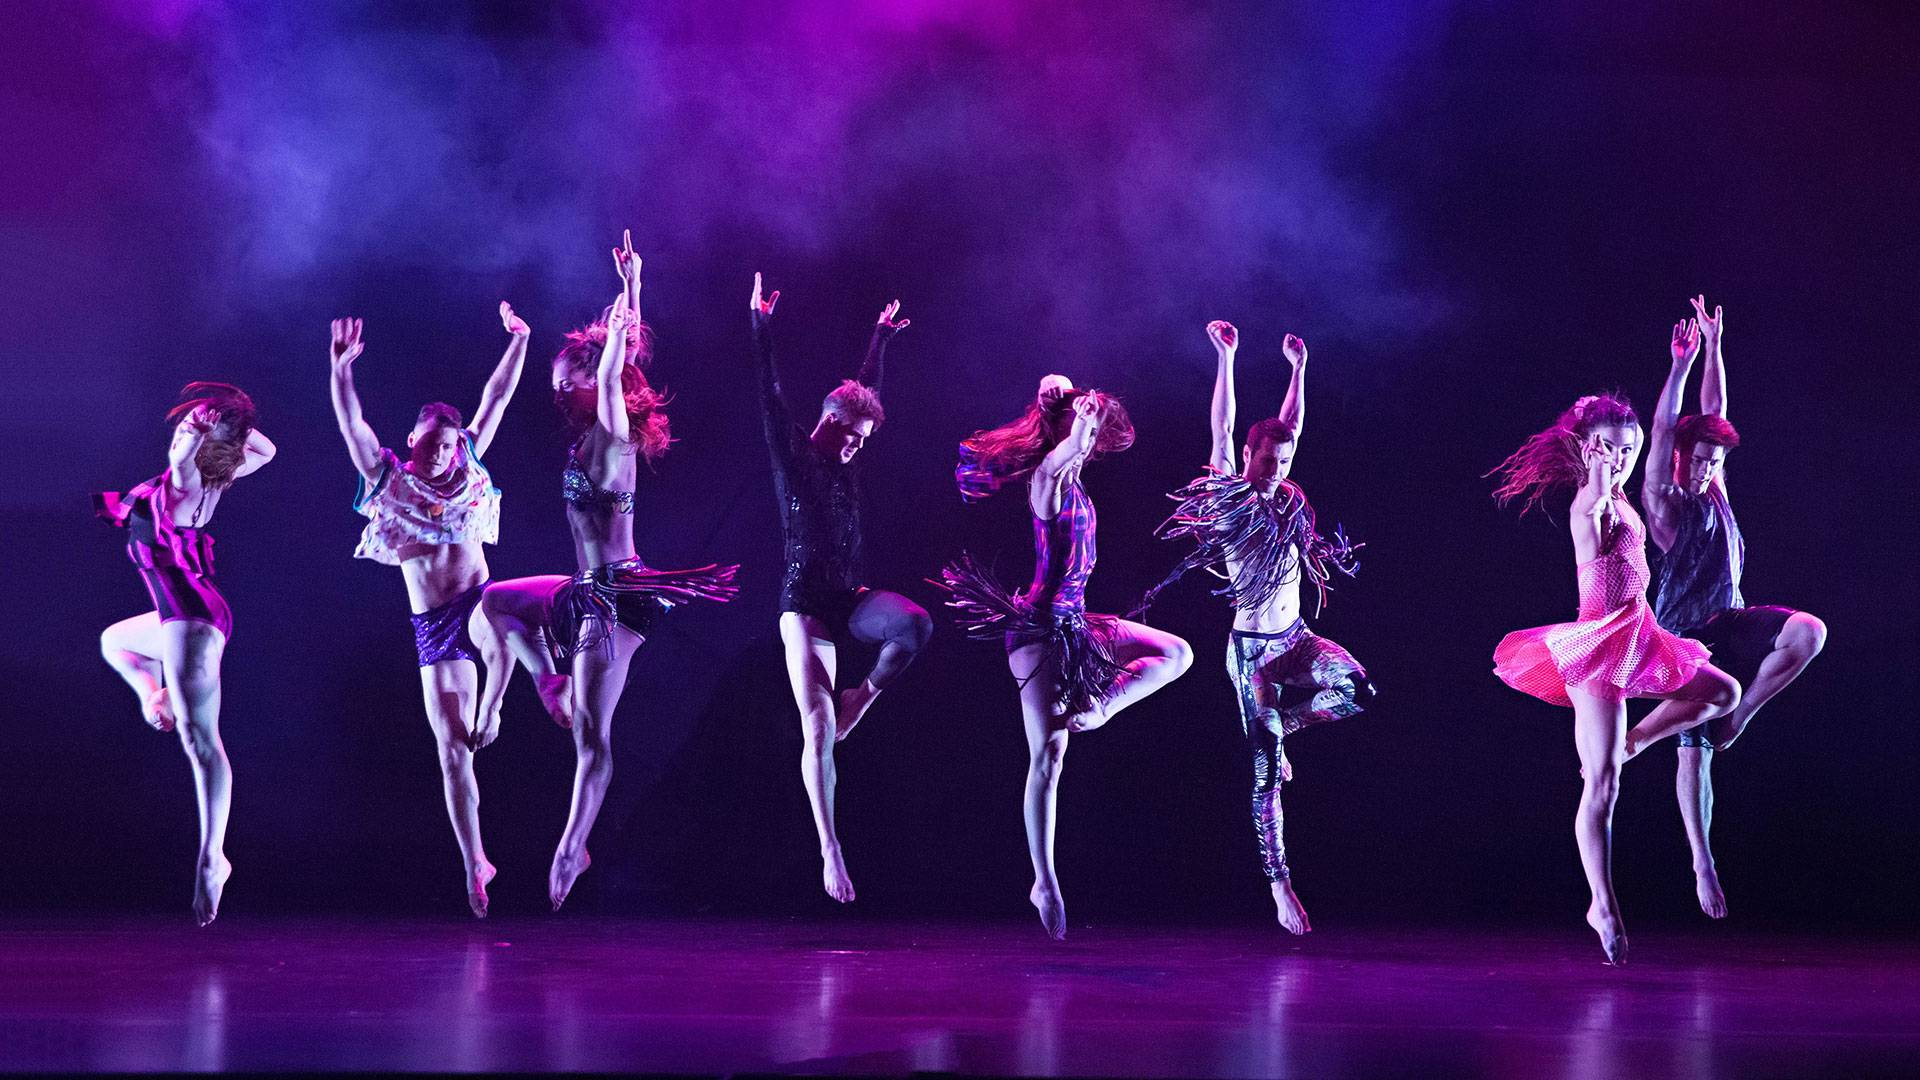 Rioult Dance coming to Bayou Theater: Ballet with rock, classical roots